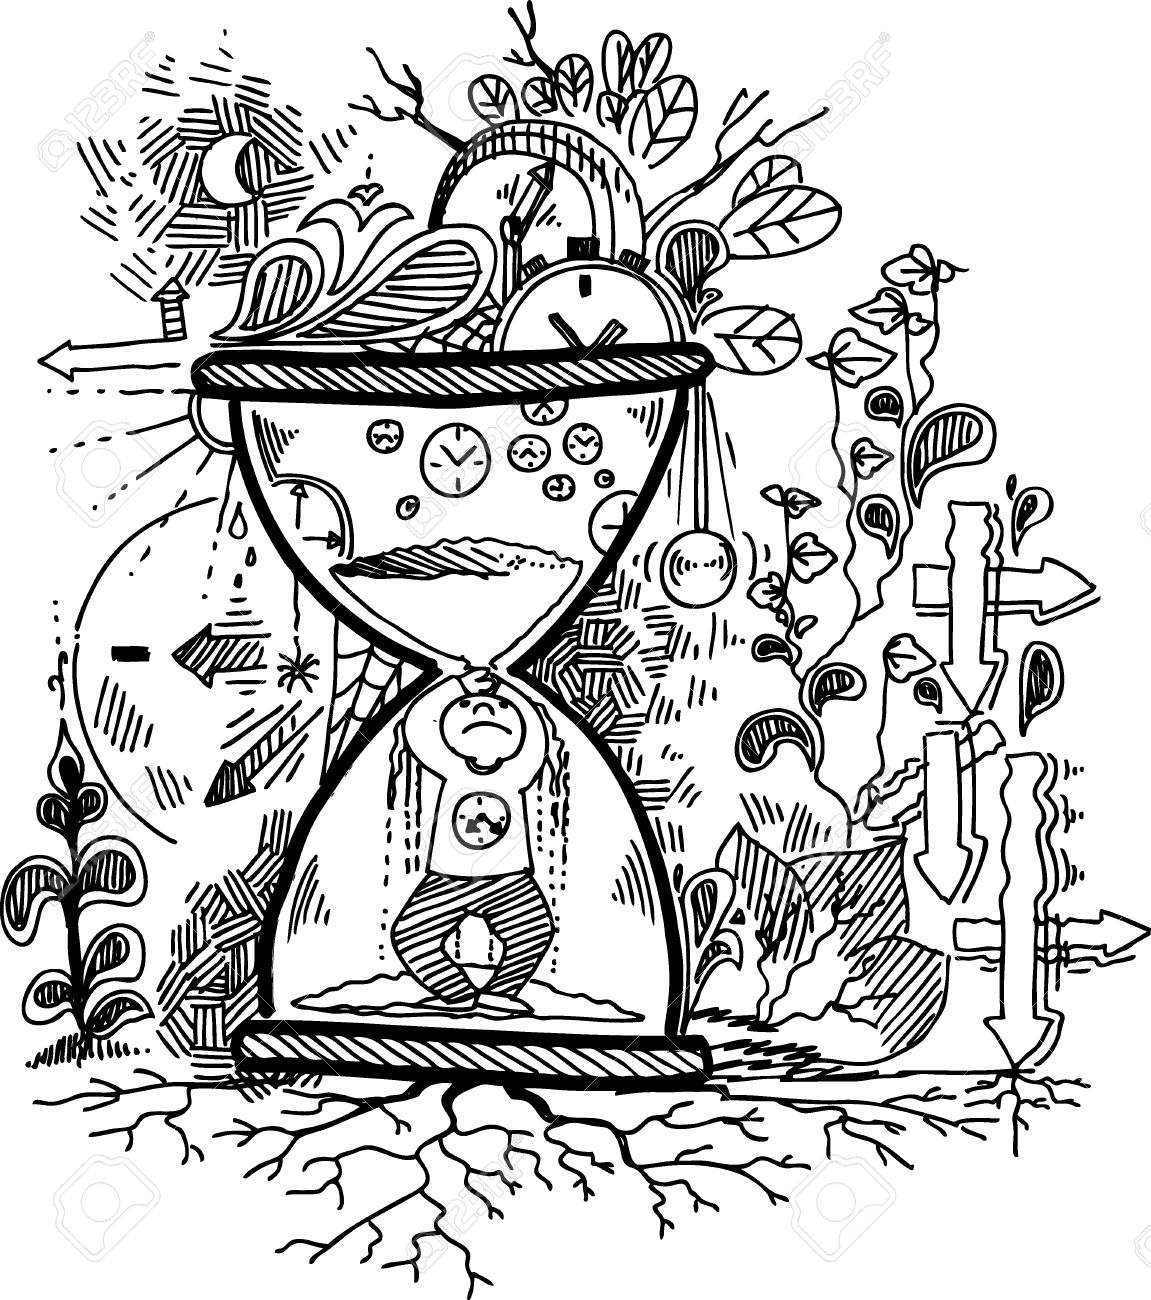 Sketchy doodles with stressed man trapped in an hourglass Stock Vector - 17873675